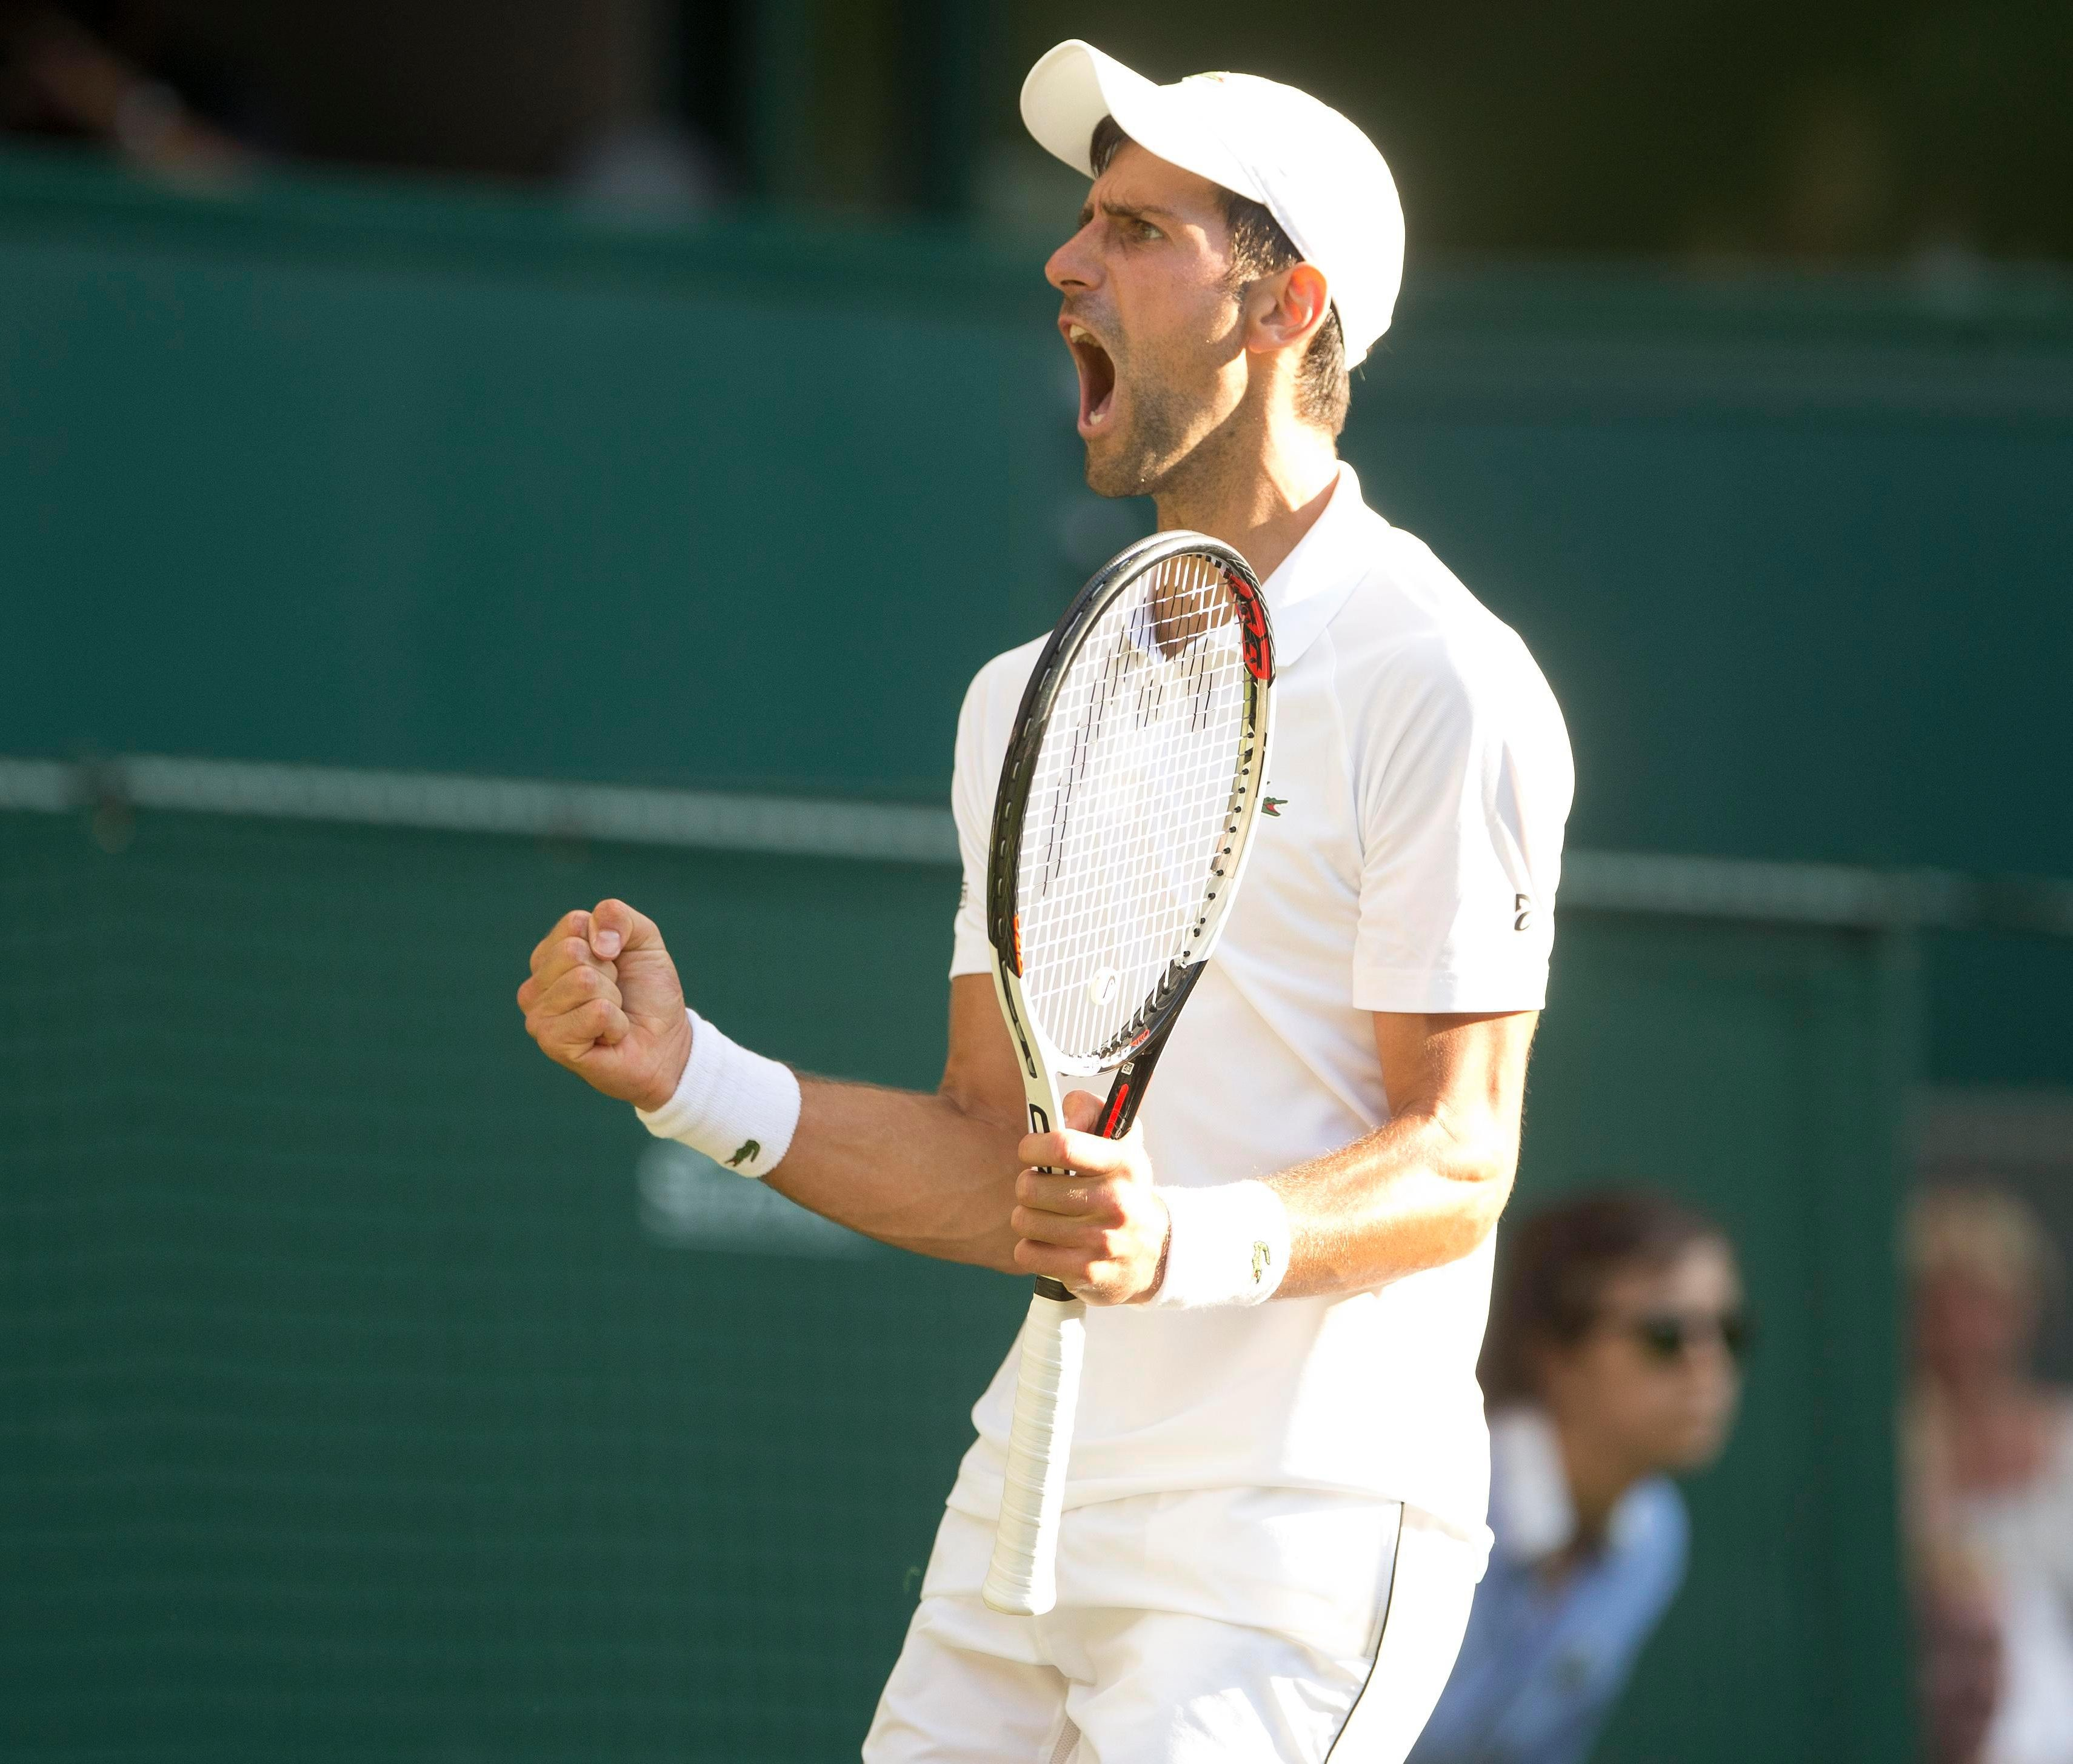 Djokovic was clearly over the moon when winning some crucial points against his Wimbledon opponent